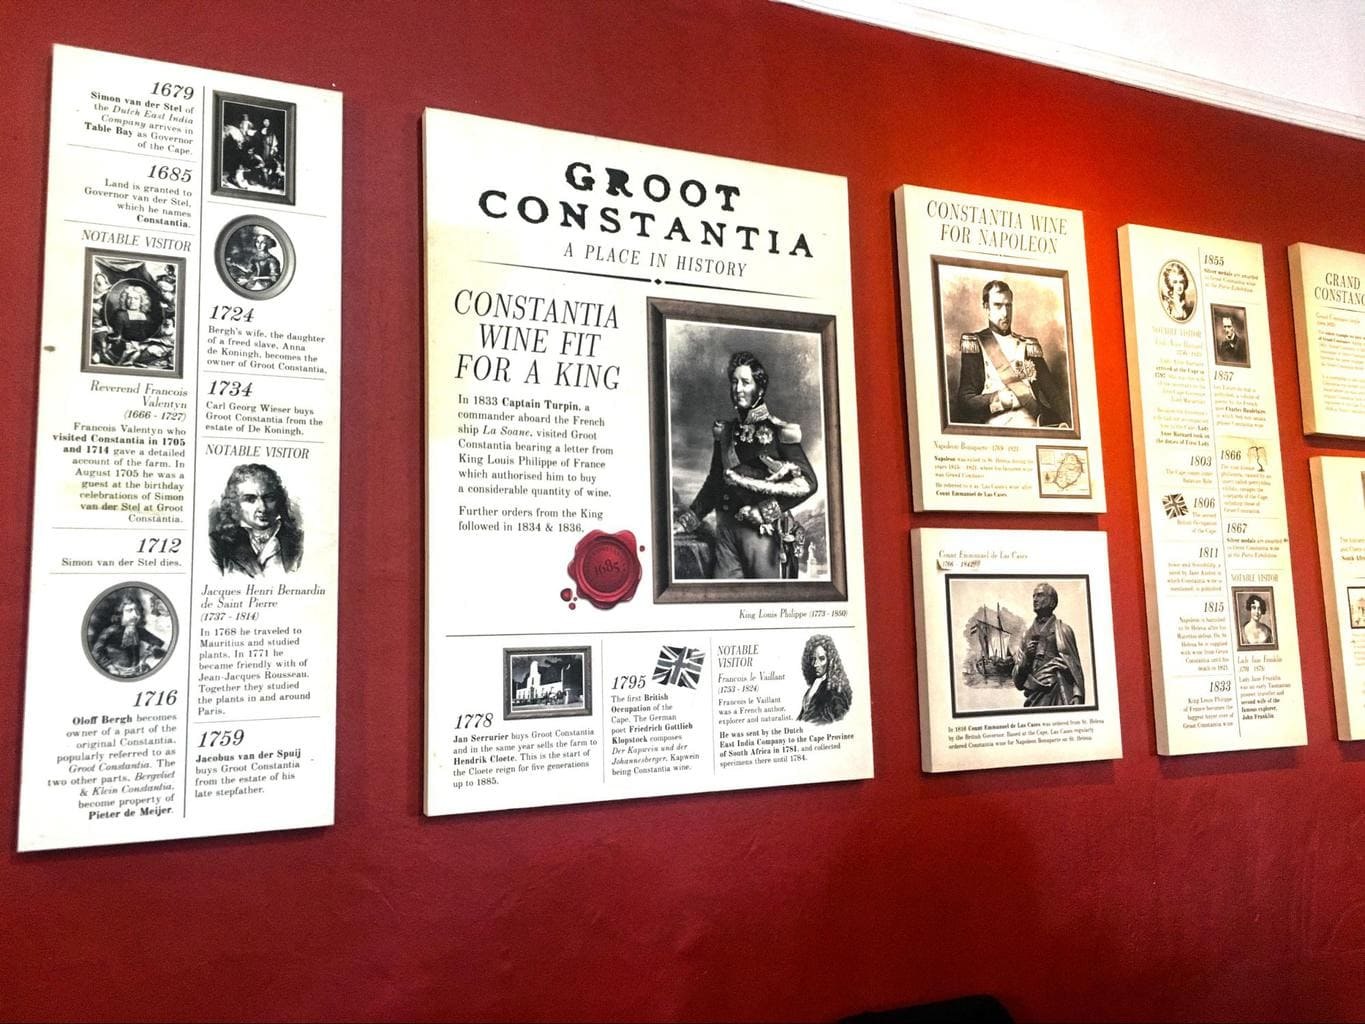 More information on the walls at Groot Constantia